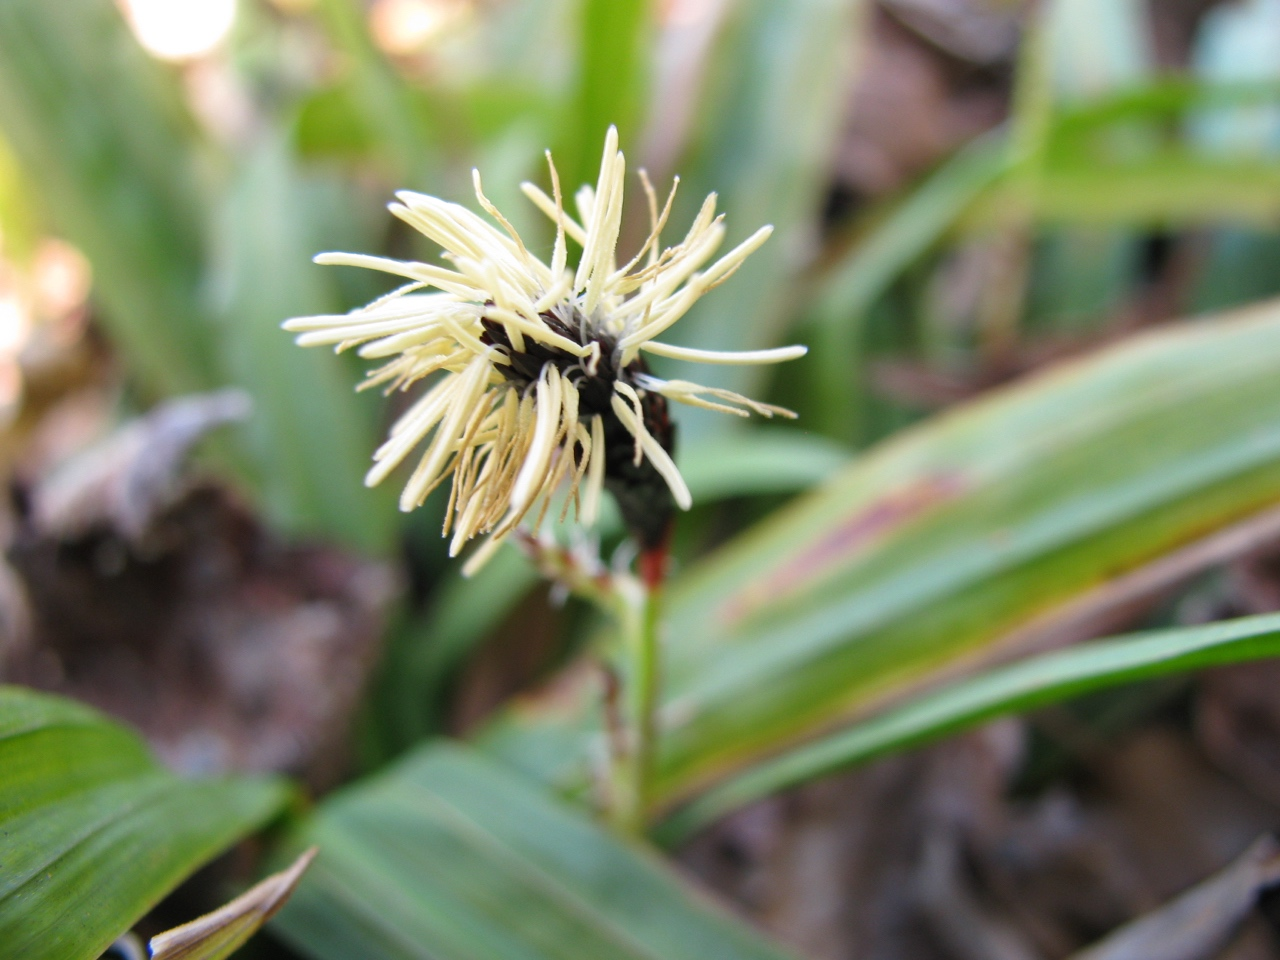 The Scientific Name is Carex plantaginea. You will likely hear them called Plantain-leaved Sedge, Seersucker Sedge. This picture shows the Male spikelet in late February of Carex plantaginea